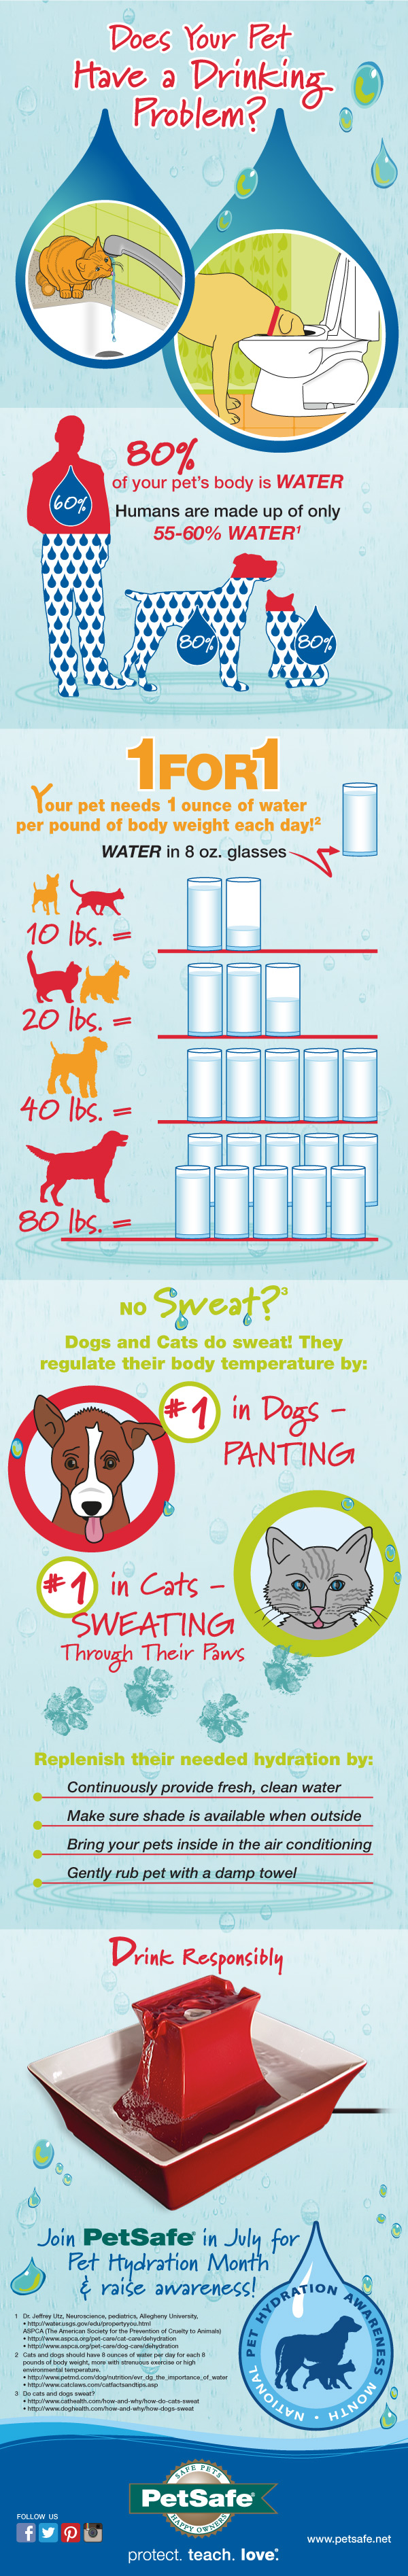 PetSafe_Pet Hydration Month Infographic 2015